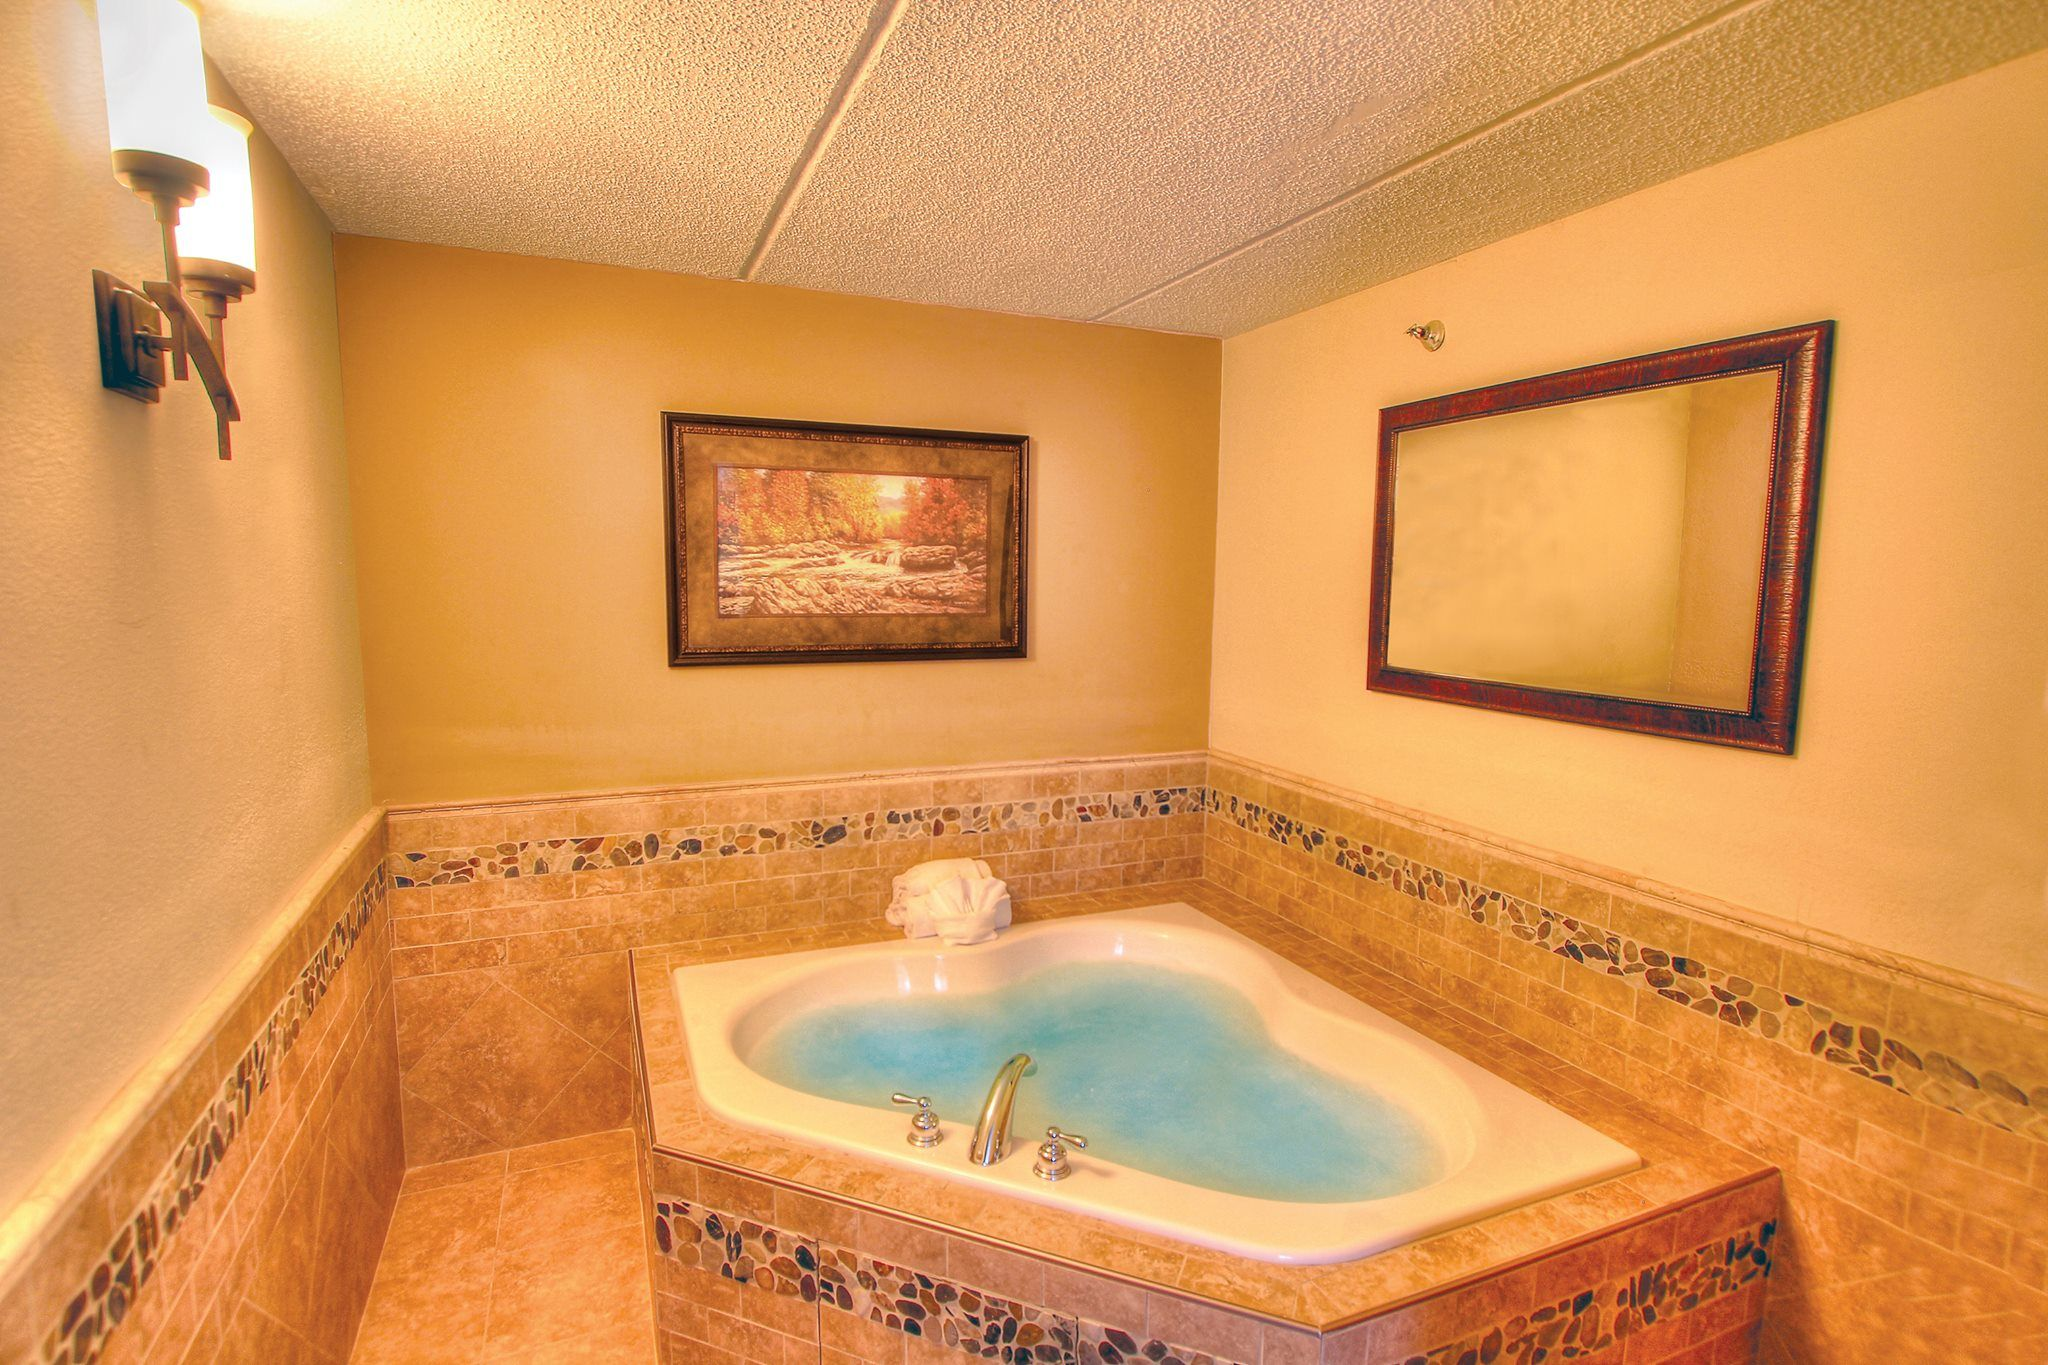 Some Of The Rooms Have Jacuzzi Tubs Jacuzzi Room Jacuzzi Jacuzzi Tub